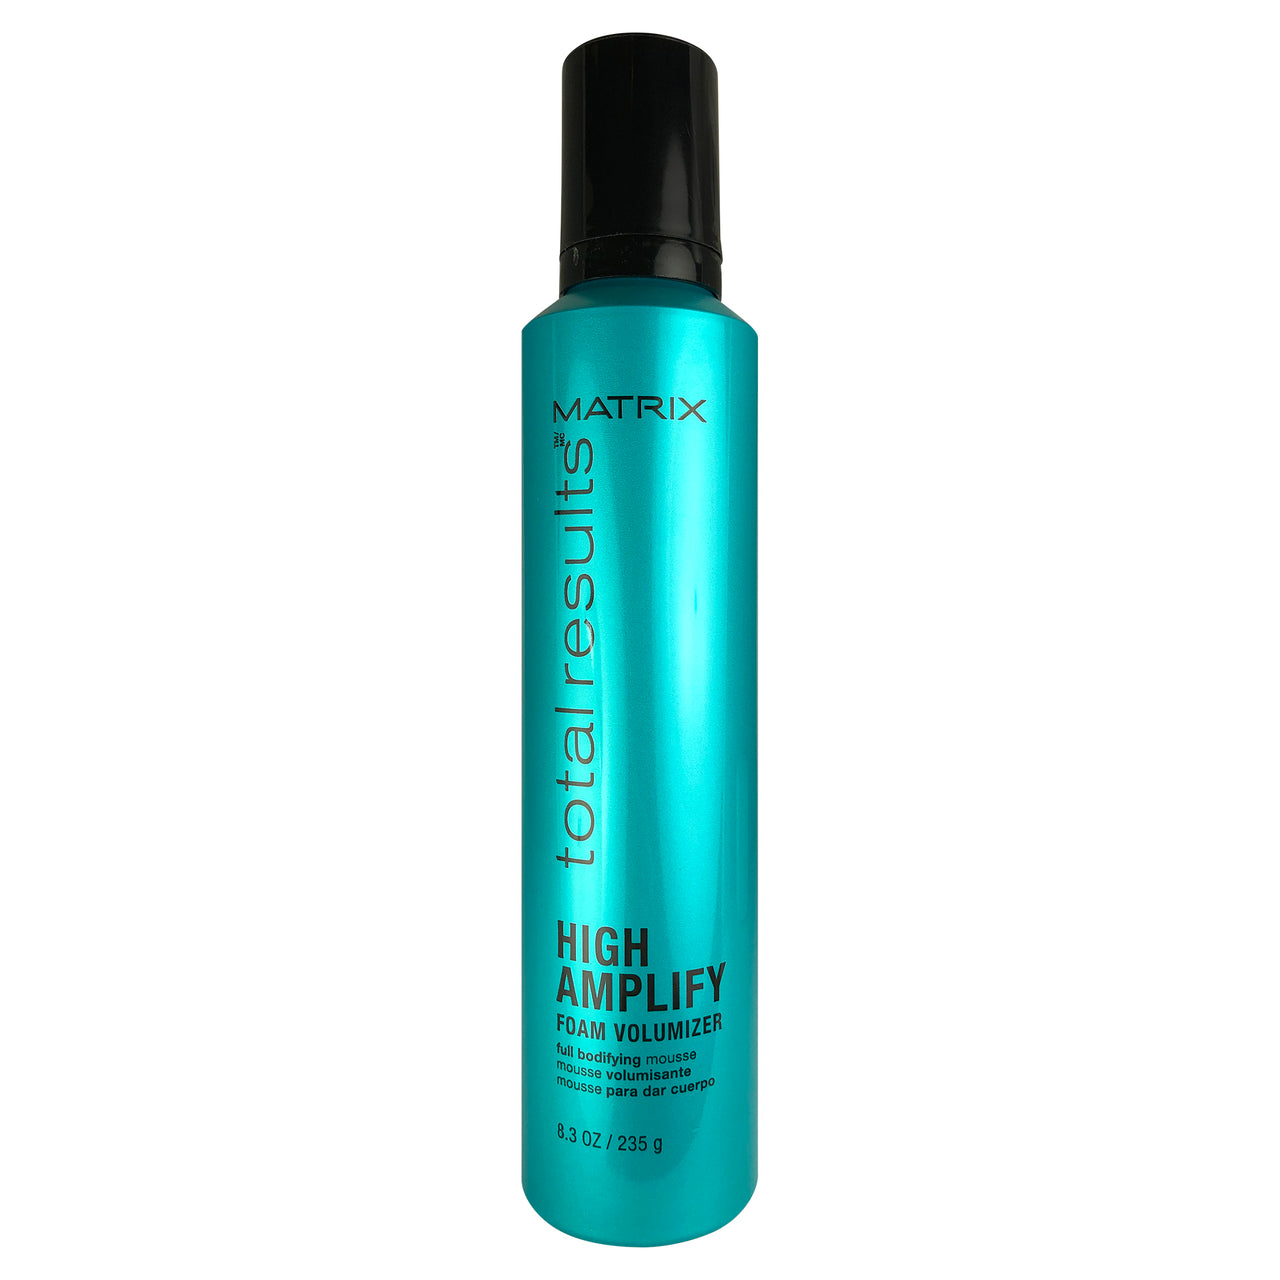 Matrix Total Results High Amplify Foam Voluminizing Full Bodyfying Mousse 8.3 oz